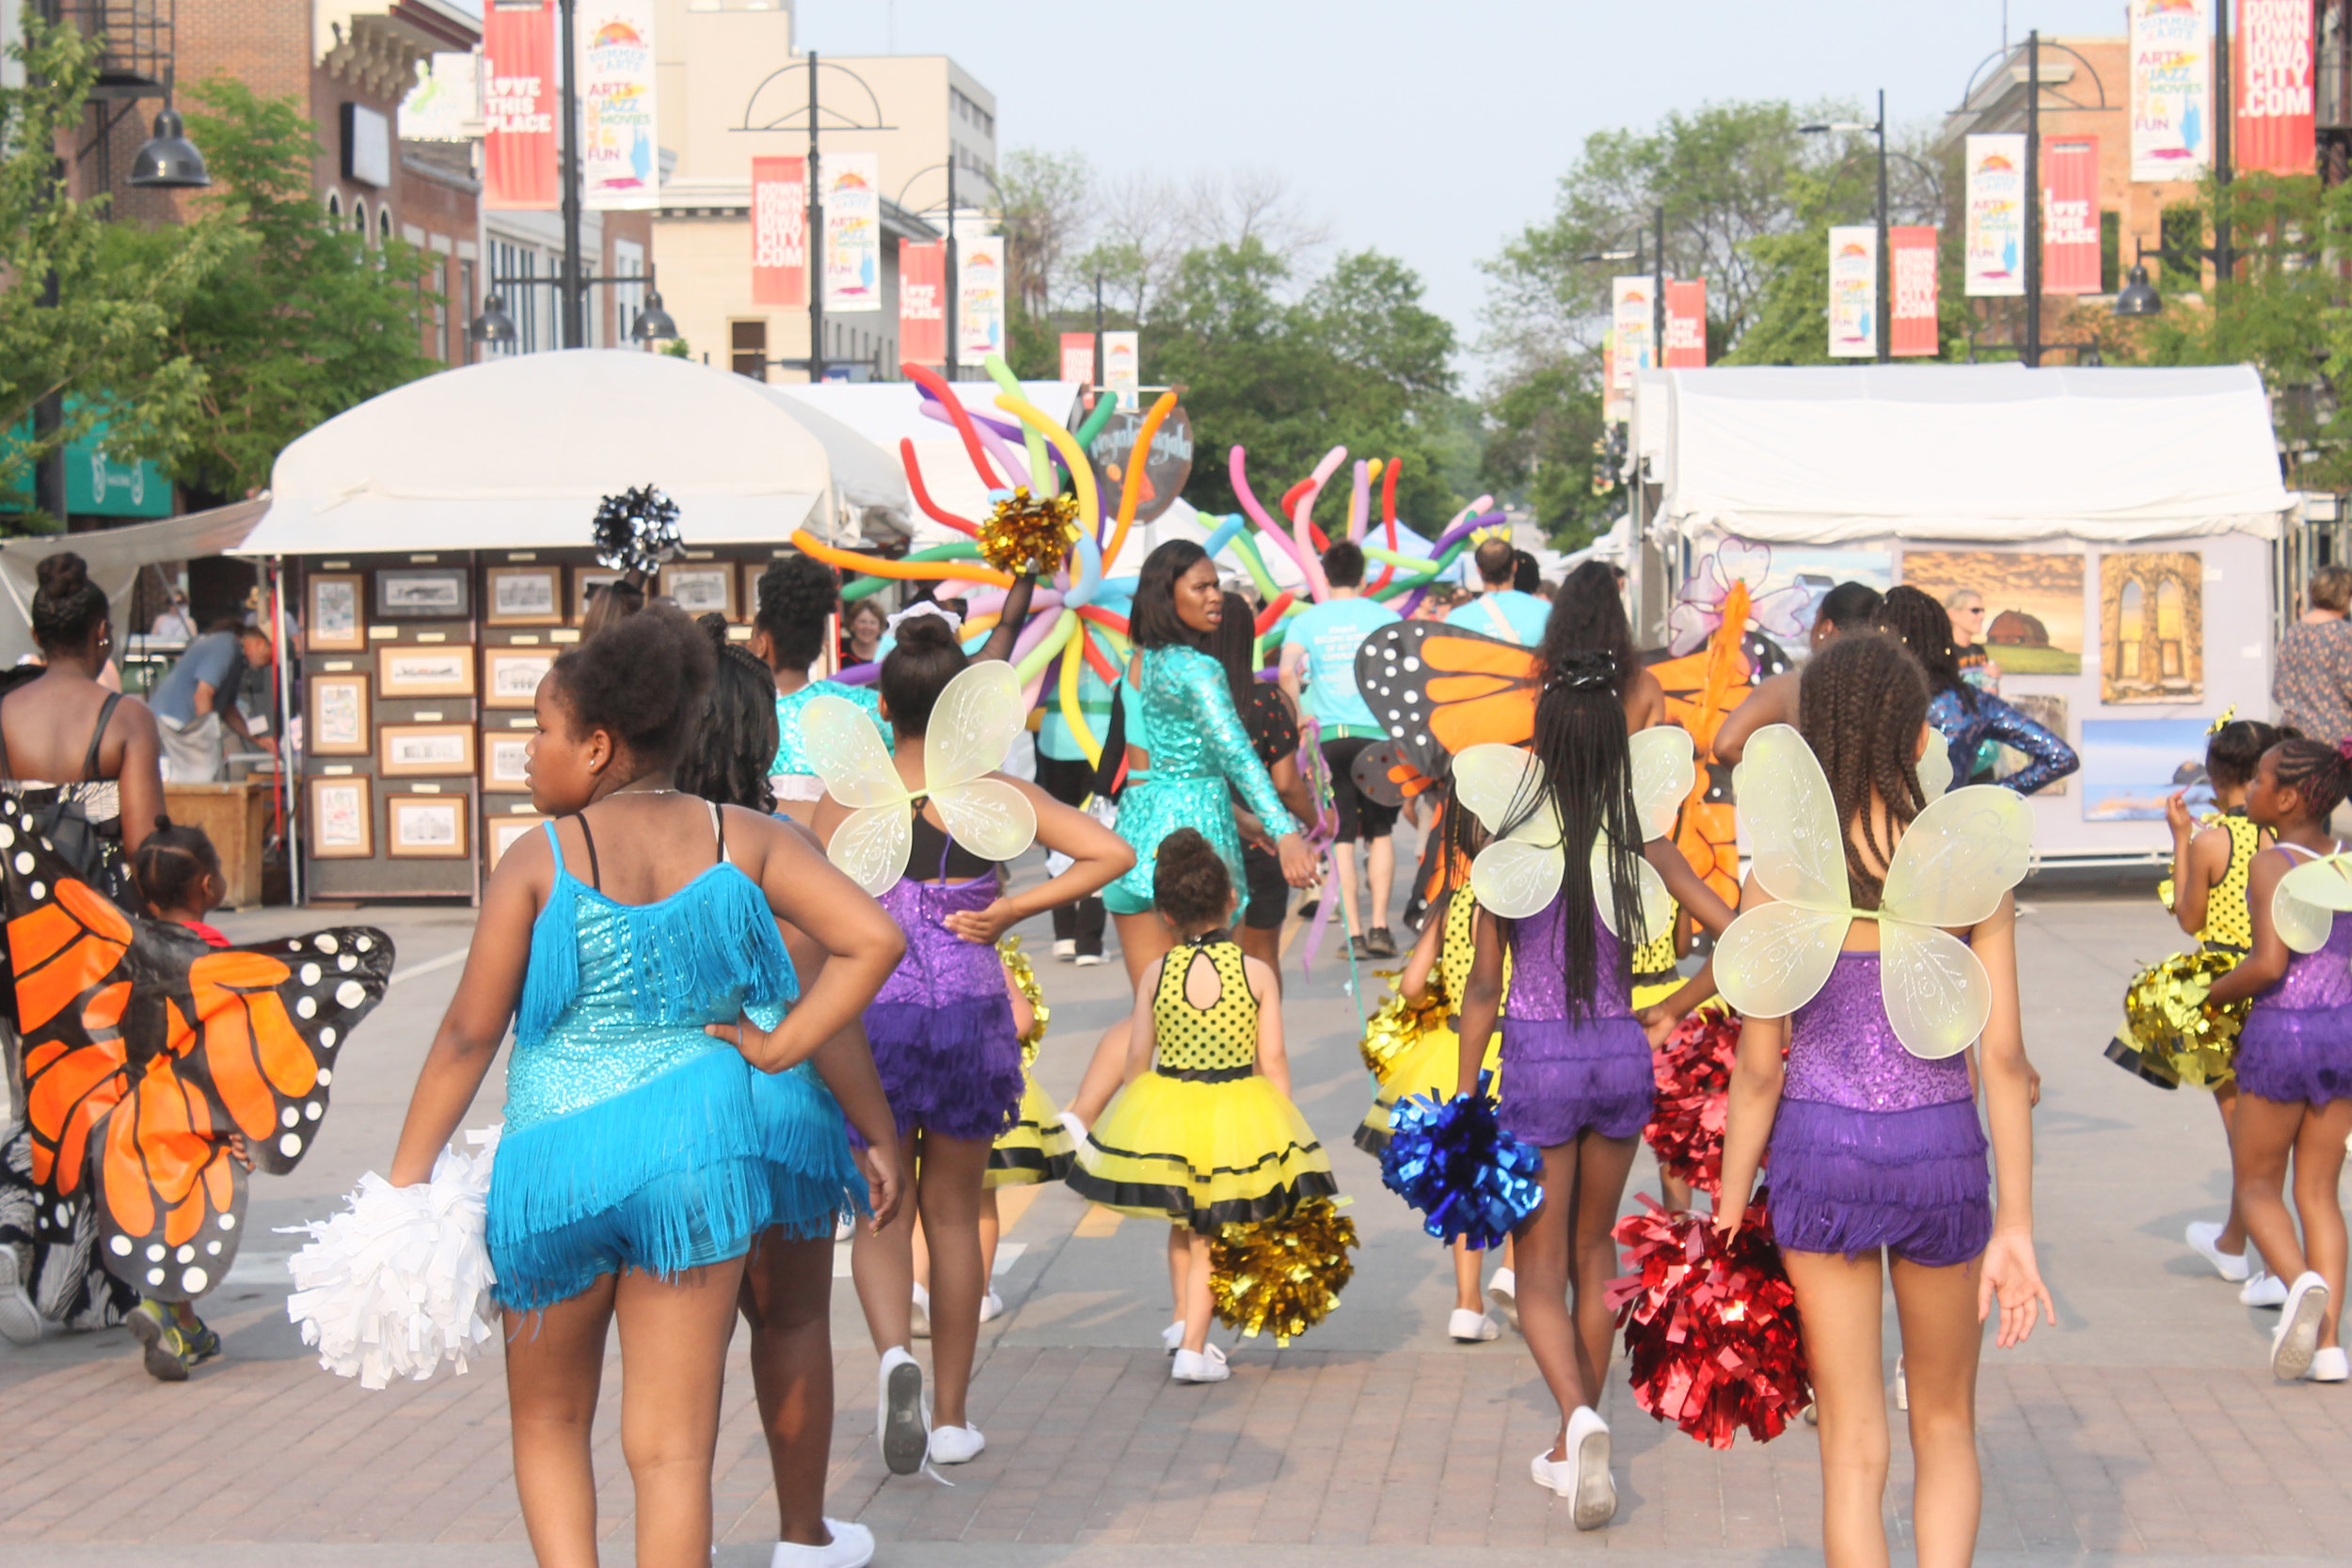 Winged dancers move along the parade route. Photo by Lauren Arzbaecher